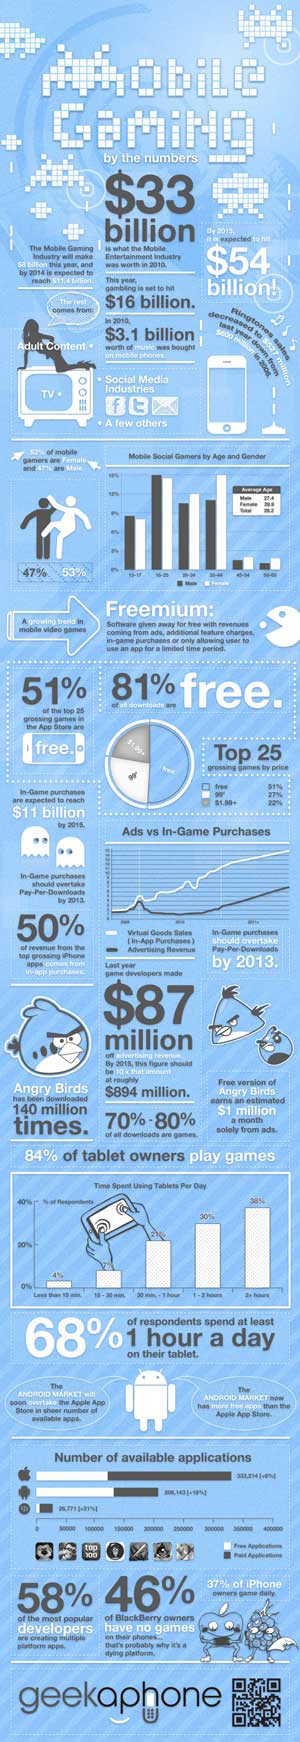 Mobile gaming by numbers infographic